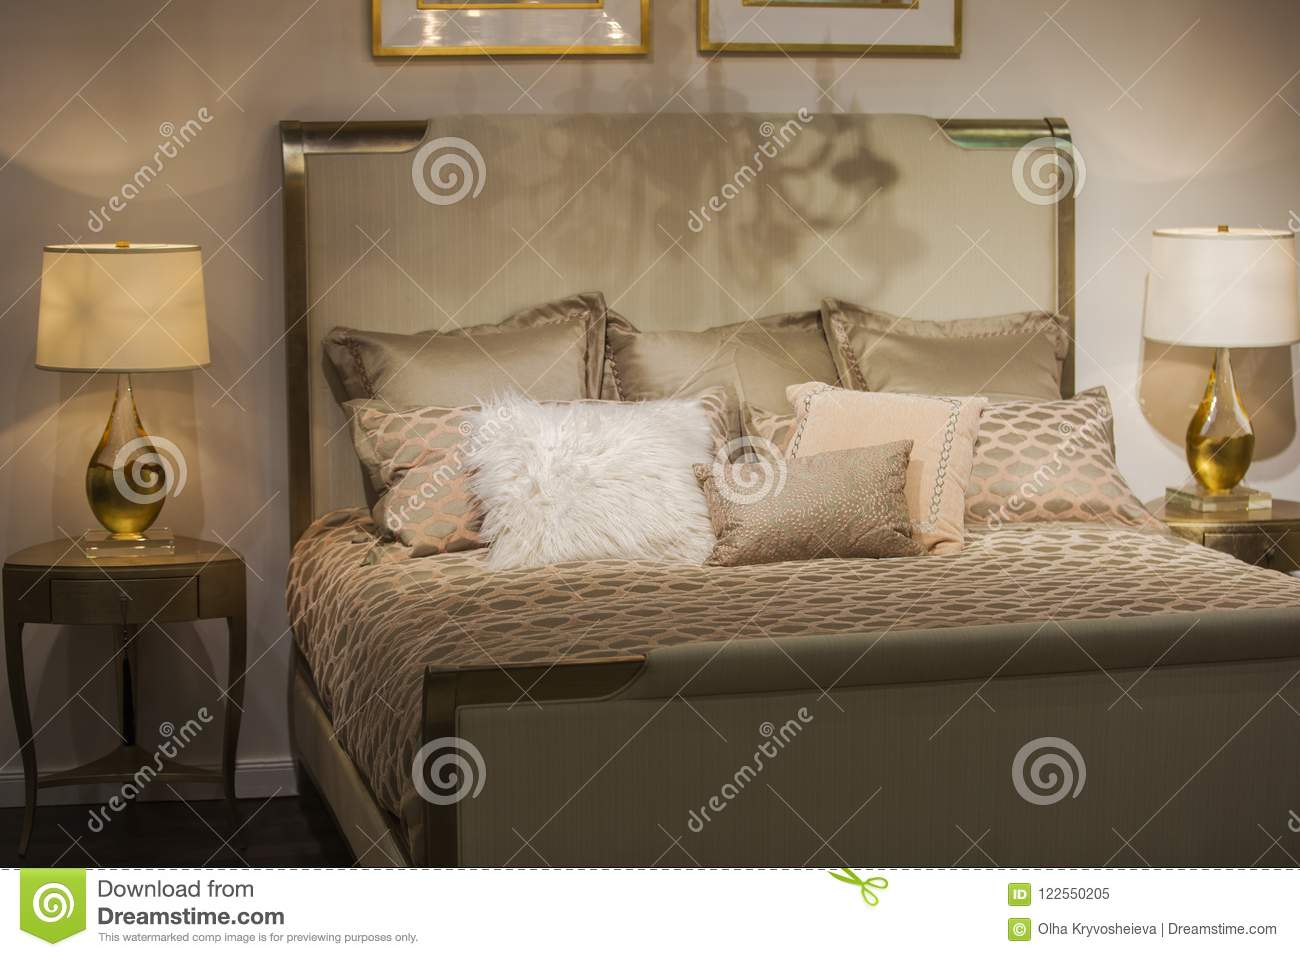 Luxurious Interior Designed Bedroom With Antique Beautiful Bedside Tables And Lamps On Them In Gold Colors With Golden Pillows Stock Image Image Of Bedside Duvet 122550205